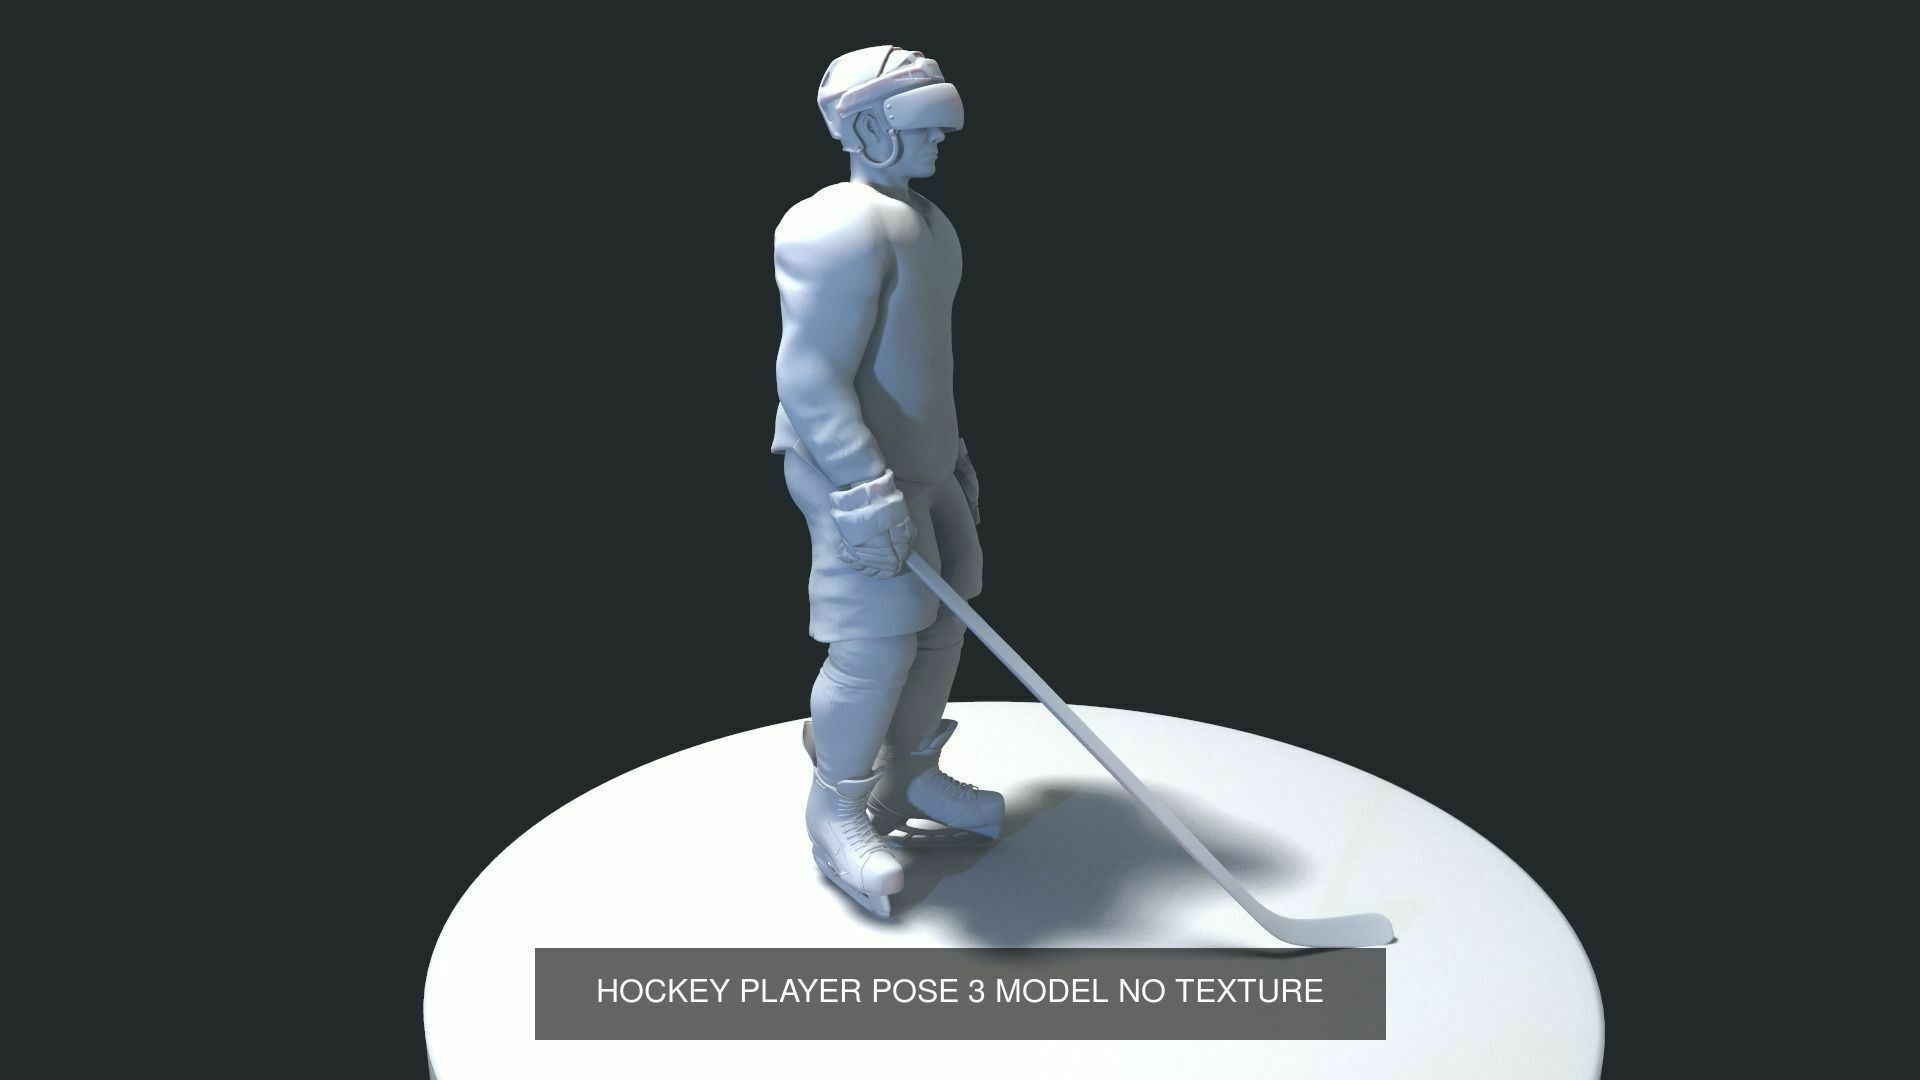 ultimate-hockey-poses-pack-model-no-texture-3d-model-max-obj-fbx-stl-tbscene (16).jpg Download OBJ file ULTIMATE HOCKEY POSES PACK MODEL NO TEXTURE 3D Model Collection • 3D printing template, NightCreativity